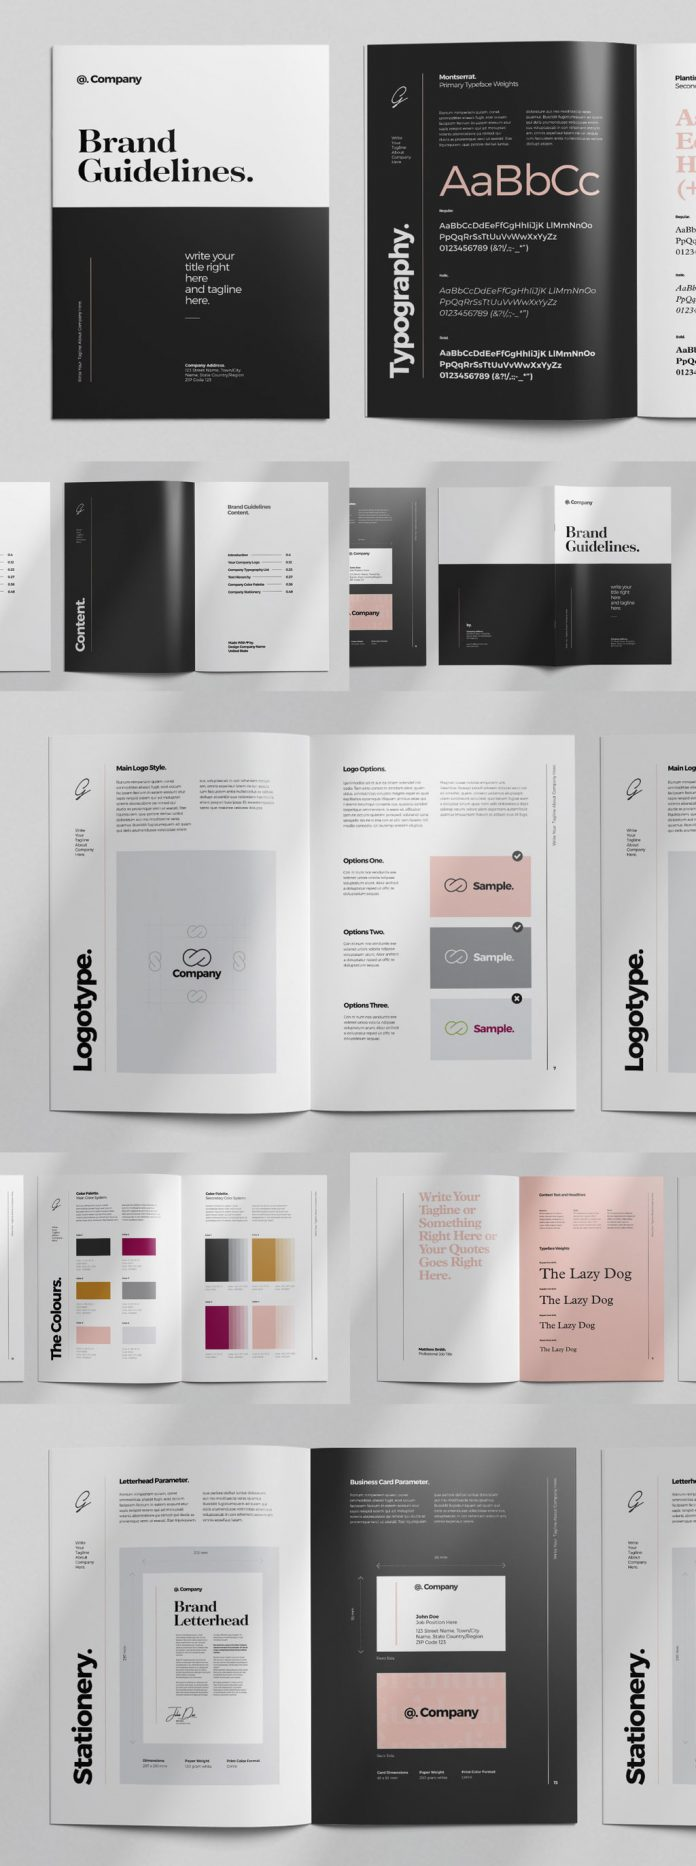 A4 and US Letter brand guidelines template for Adobe InDesign.